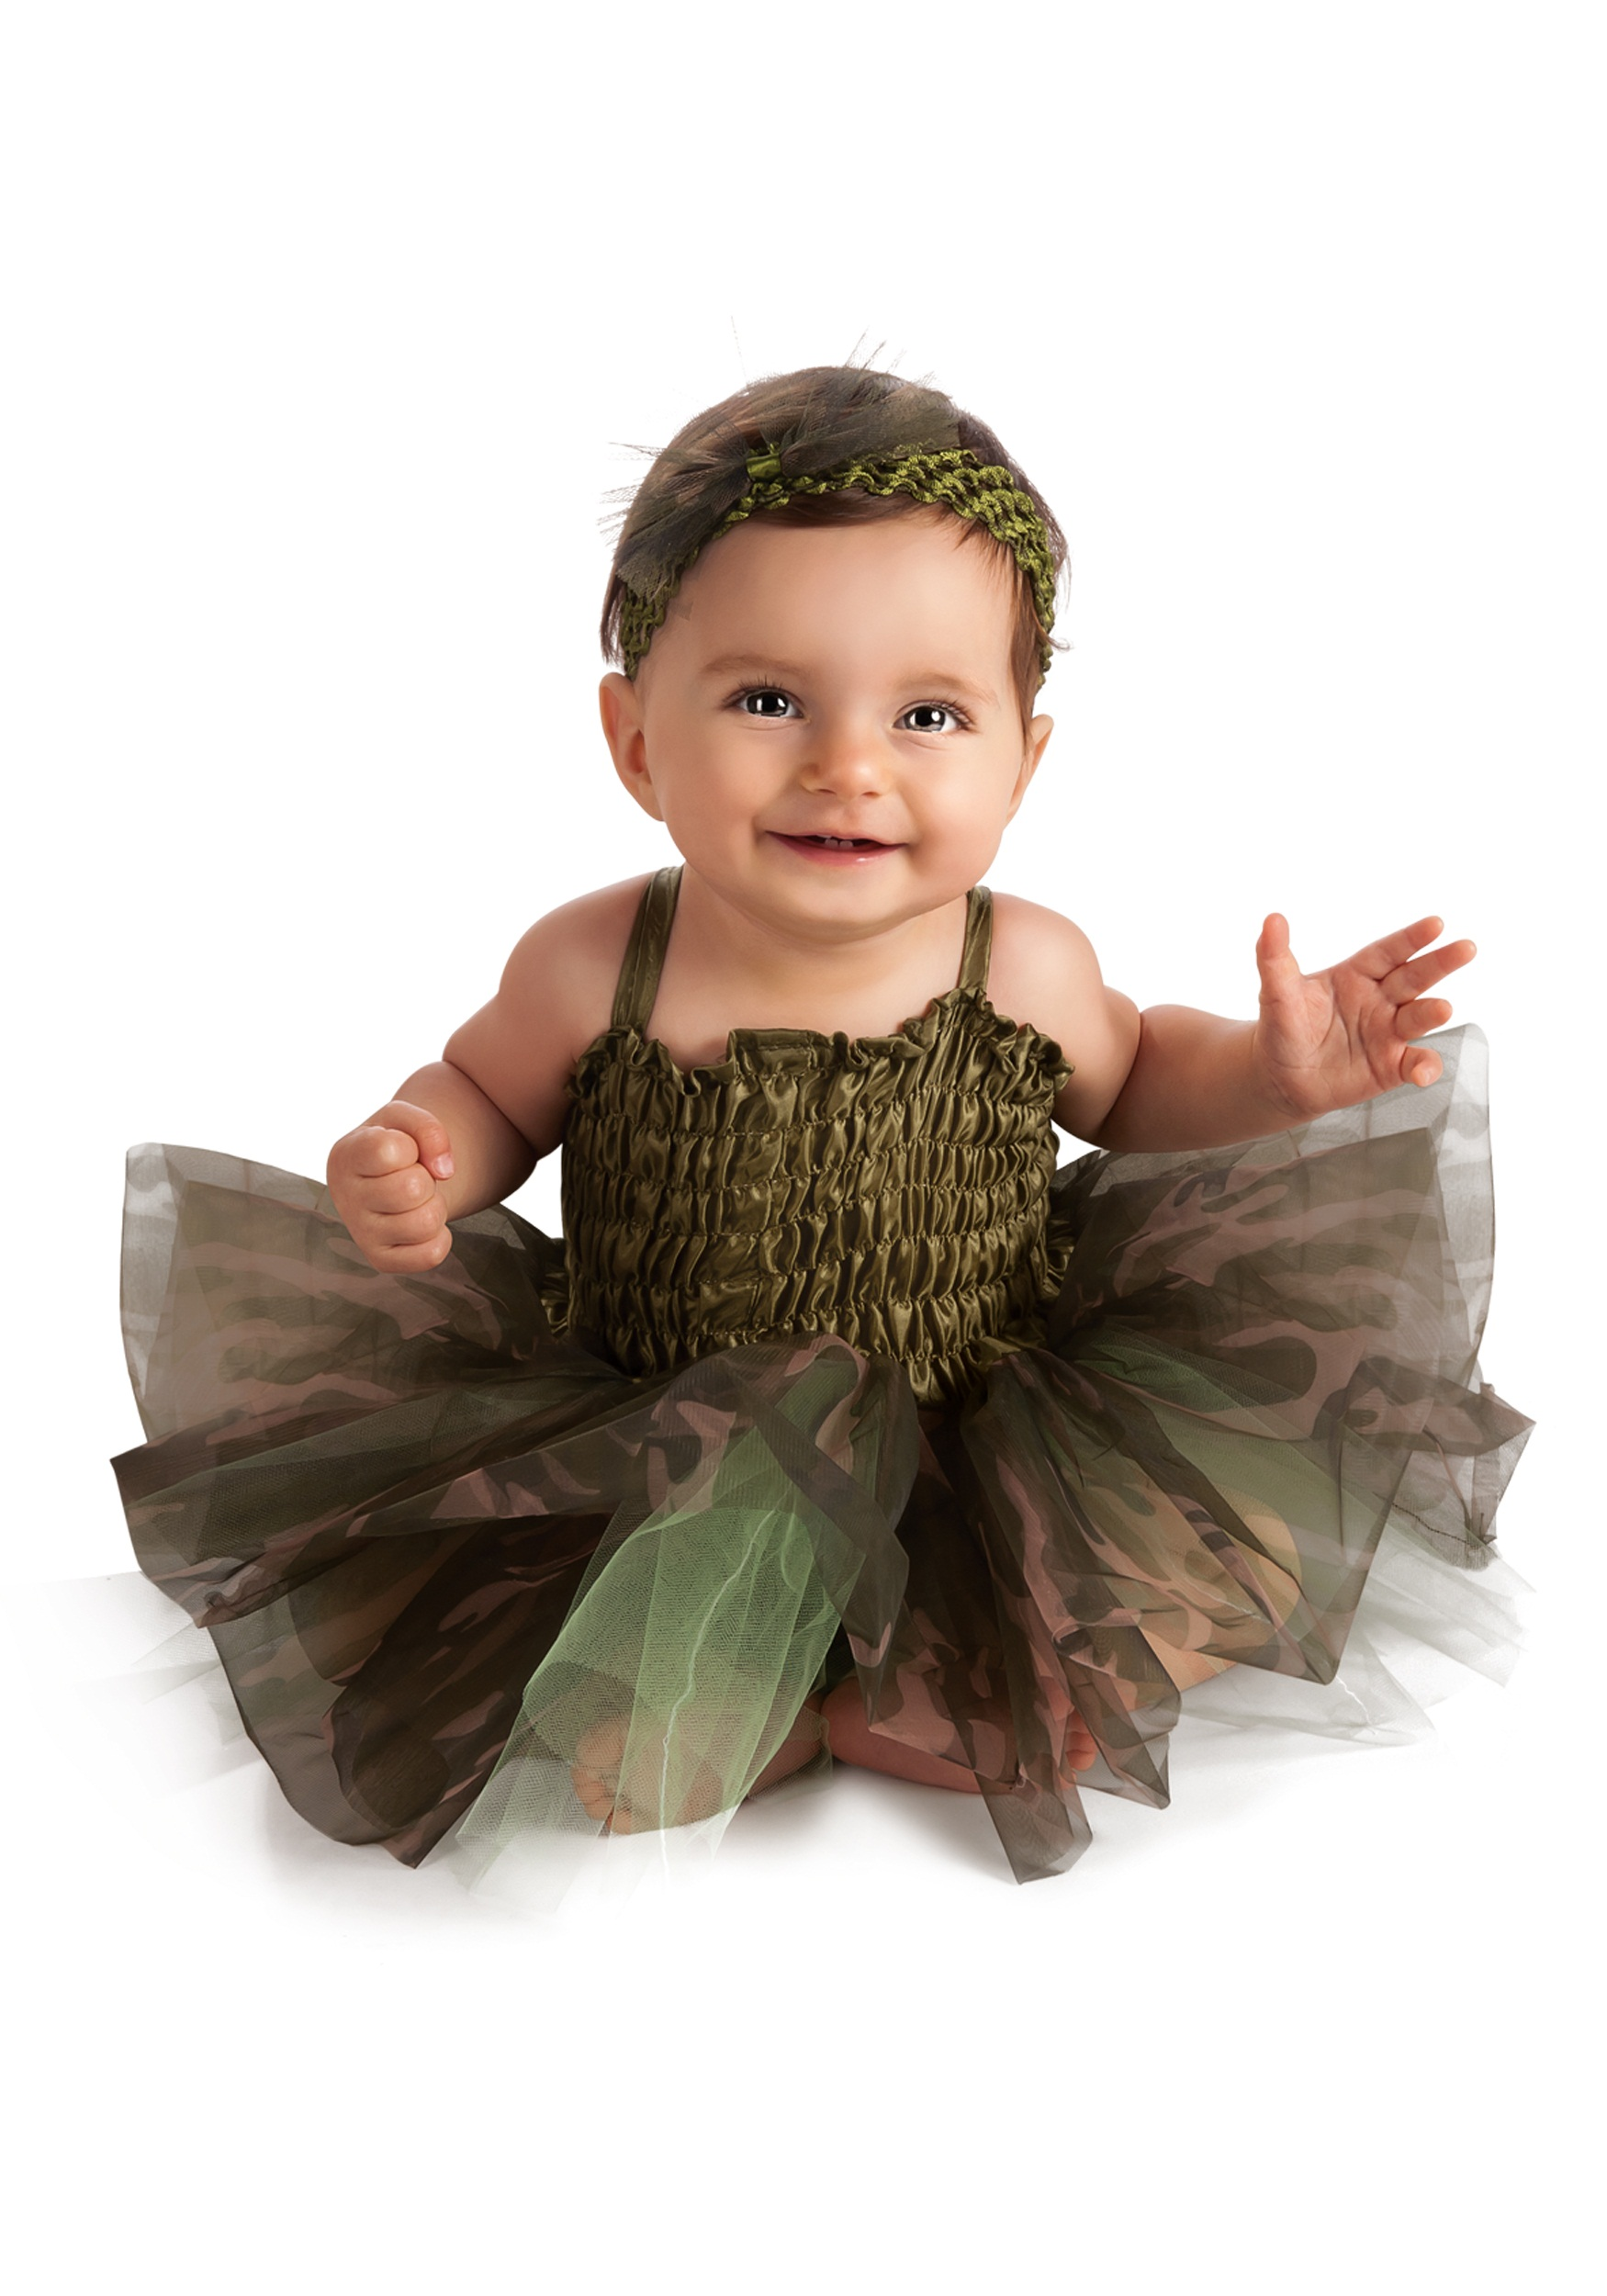 Infant Camo Tutu Costume  sc 1 st  Halloween Costumes & Infant Camo Tutu Costume - Halloween Costumes